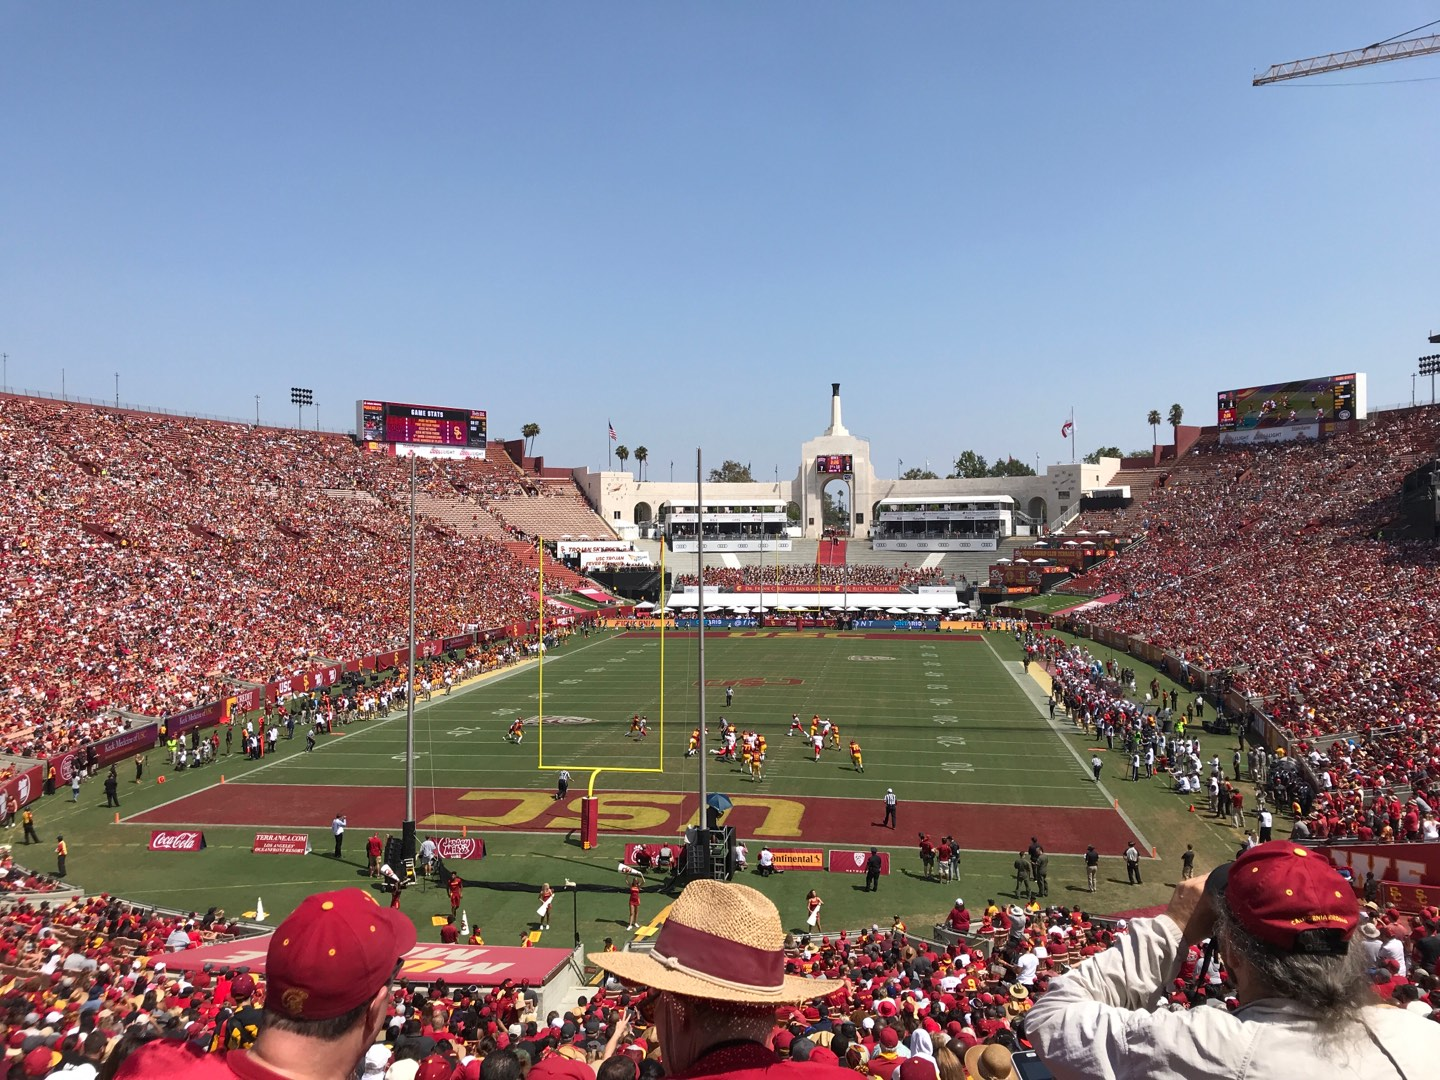 Los Angeles Memorial Coliseum Section 14H3 Row 45 Seat 104